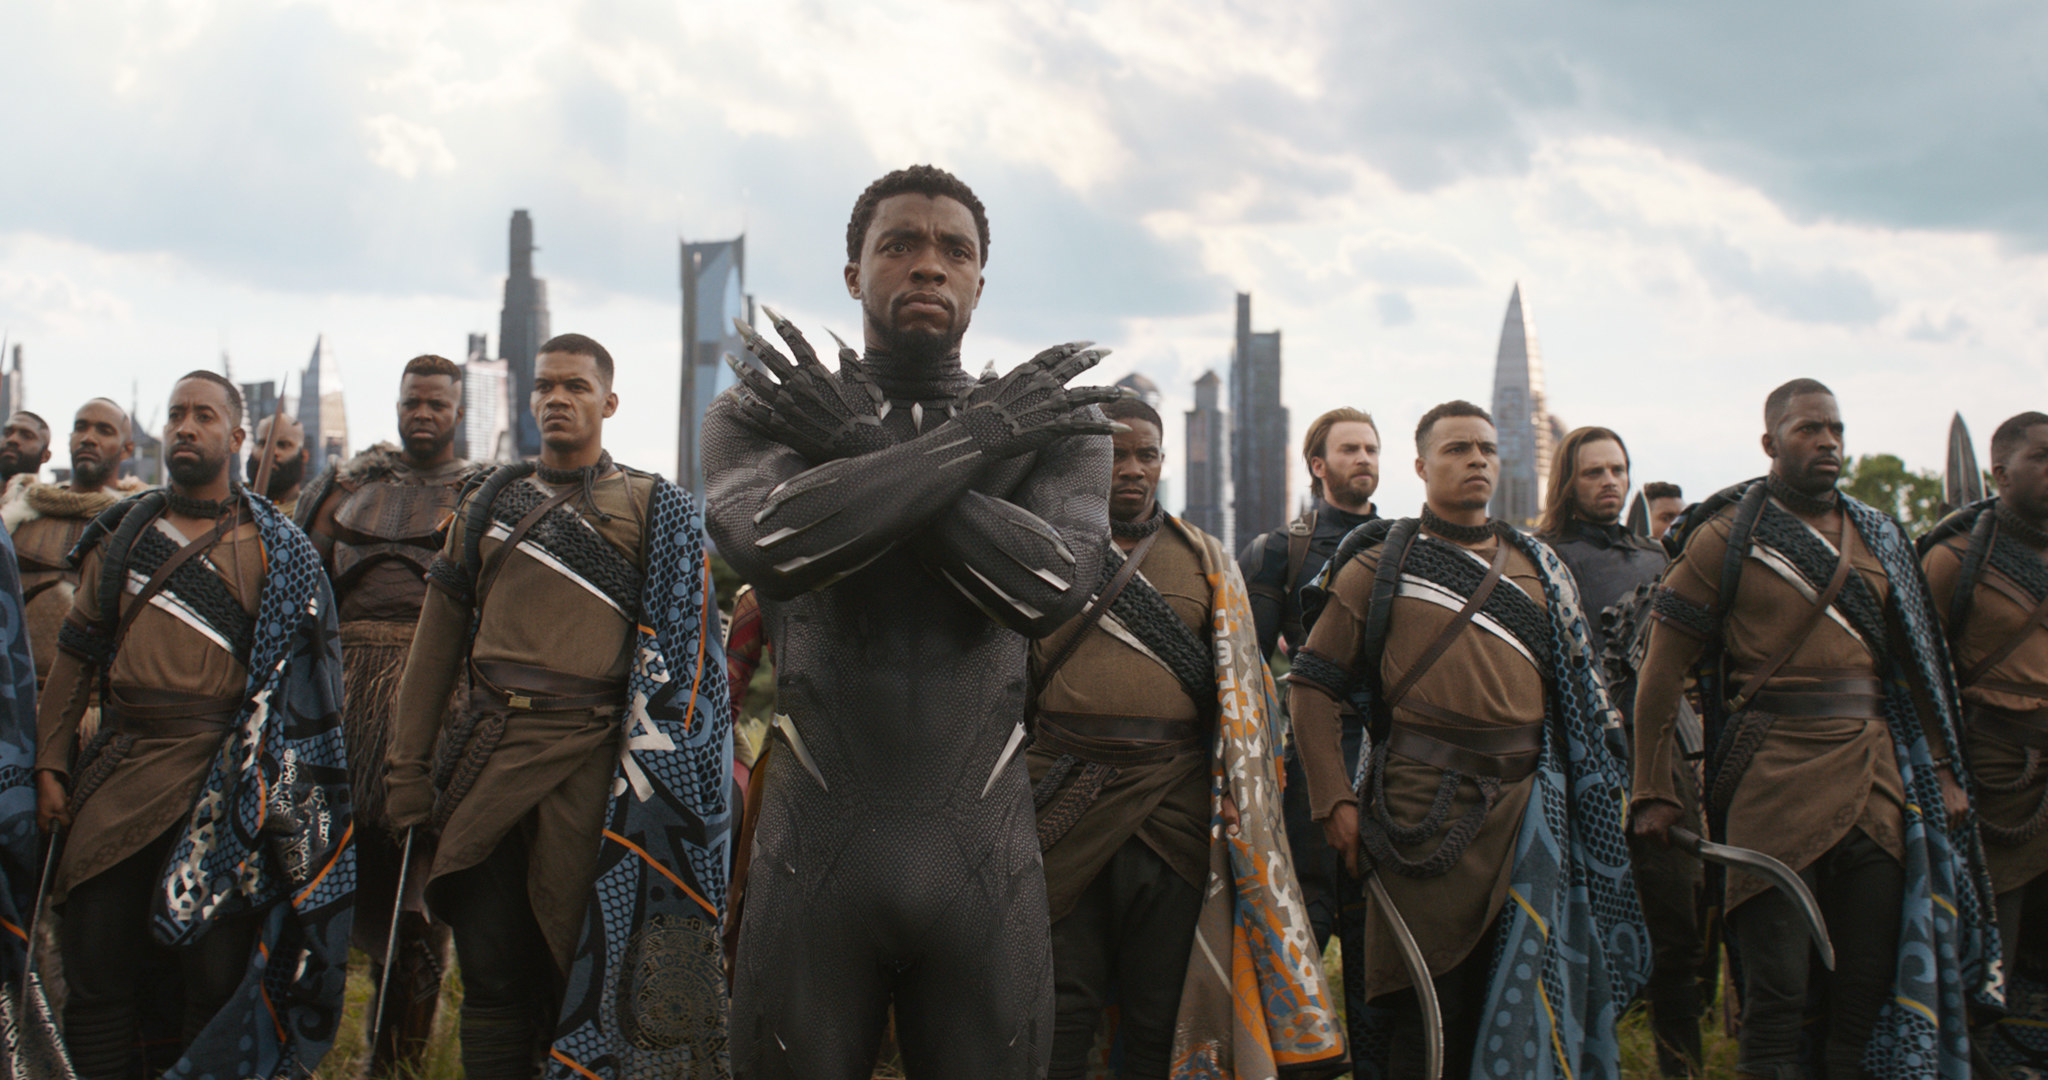 Chadwick Boseman as the Black Panther in Avengers: Infinity War